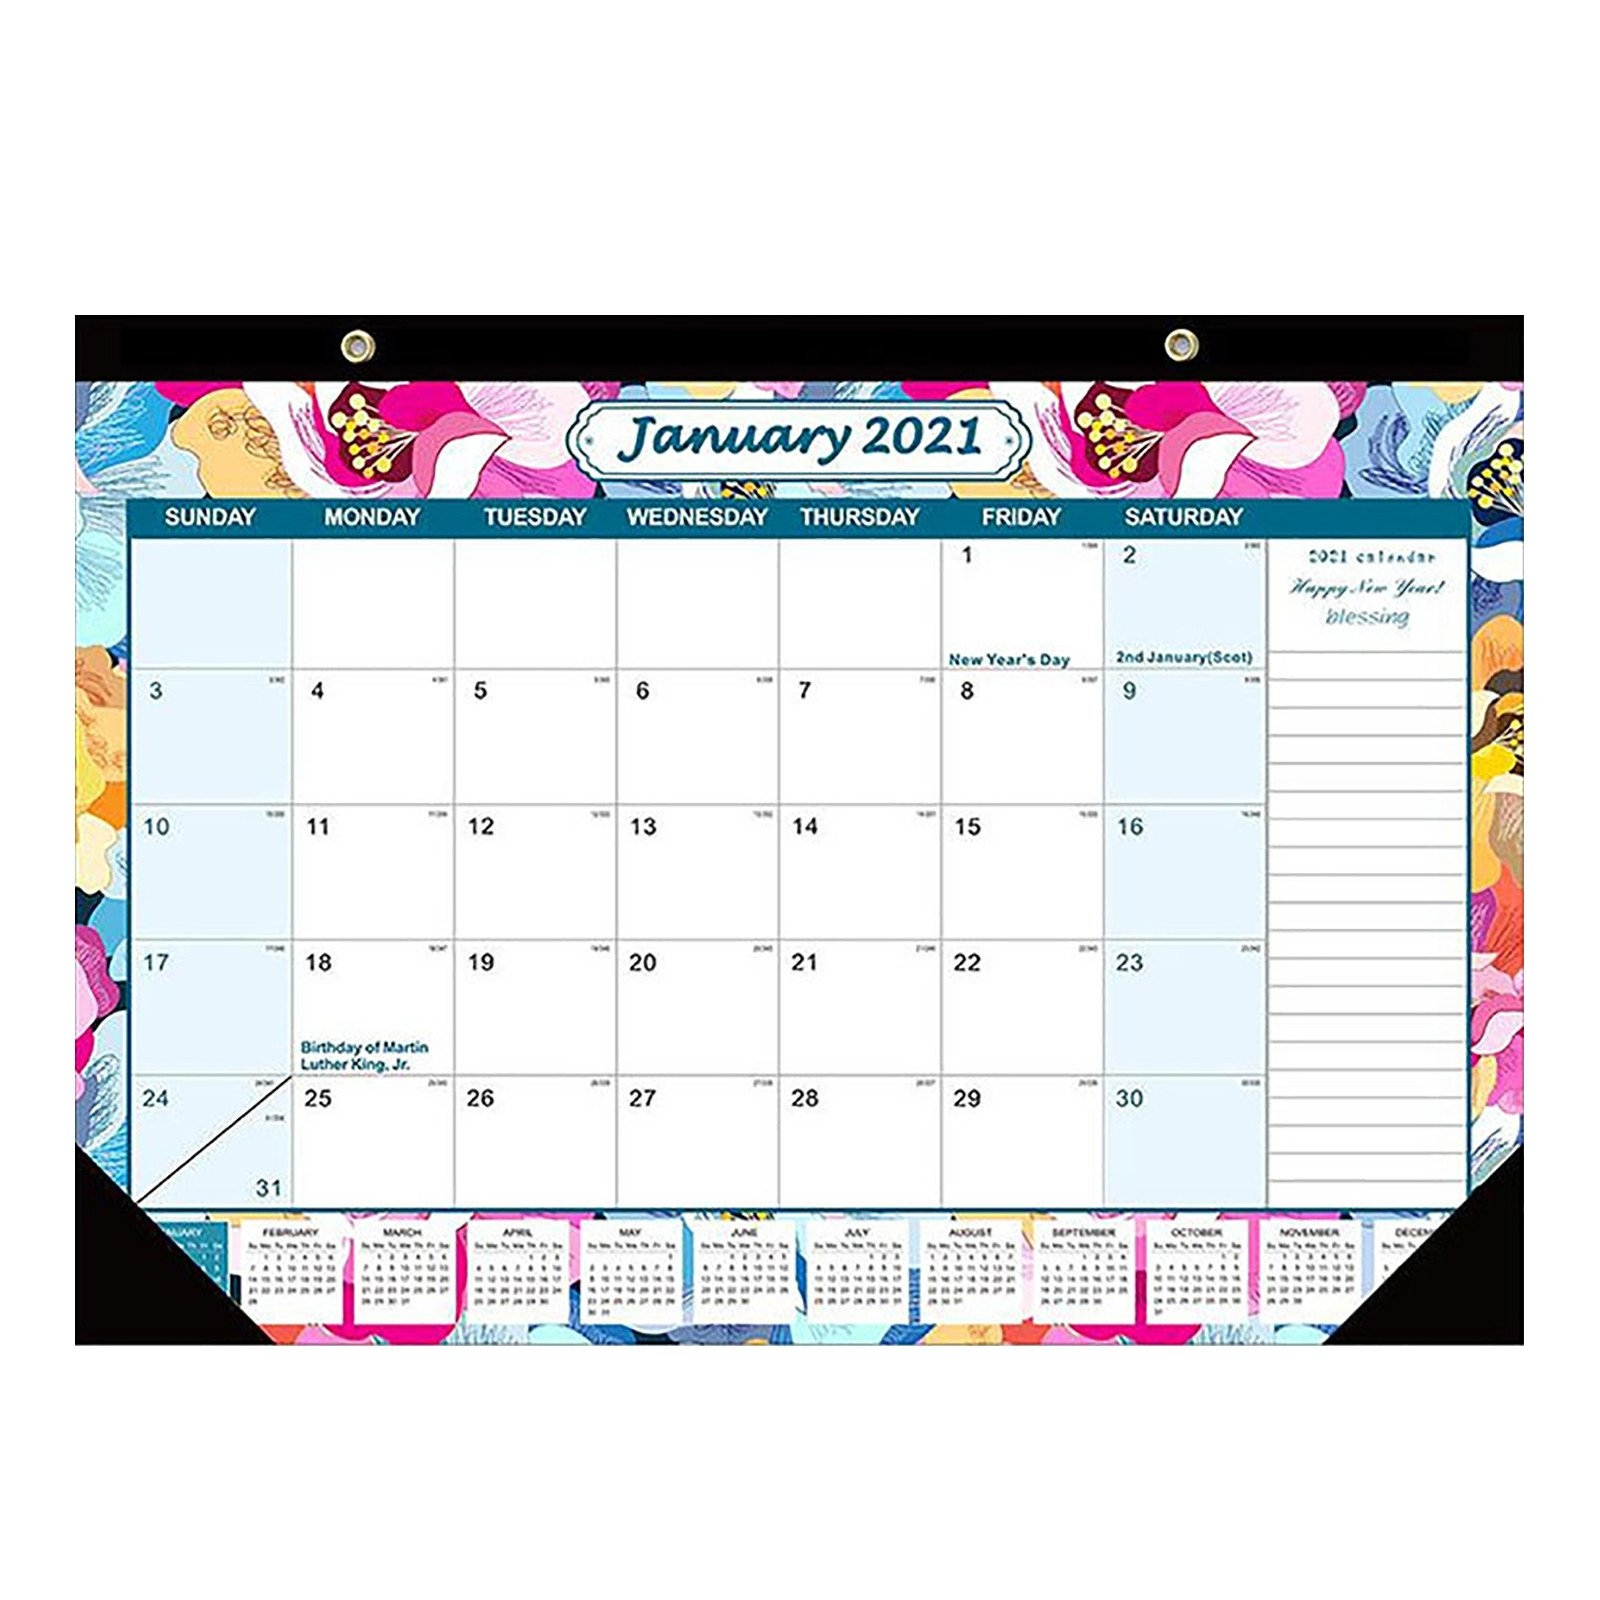 Julian Date Calendar 2021 | Example Calendar Printable in Printable Calendar 2021 Monthly With Notes Graphics